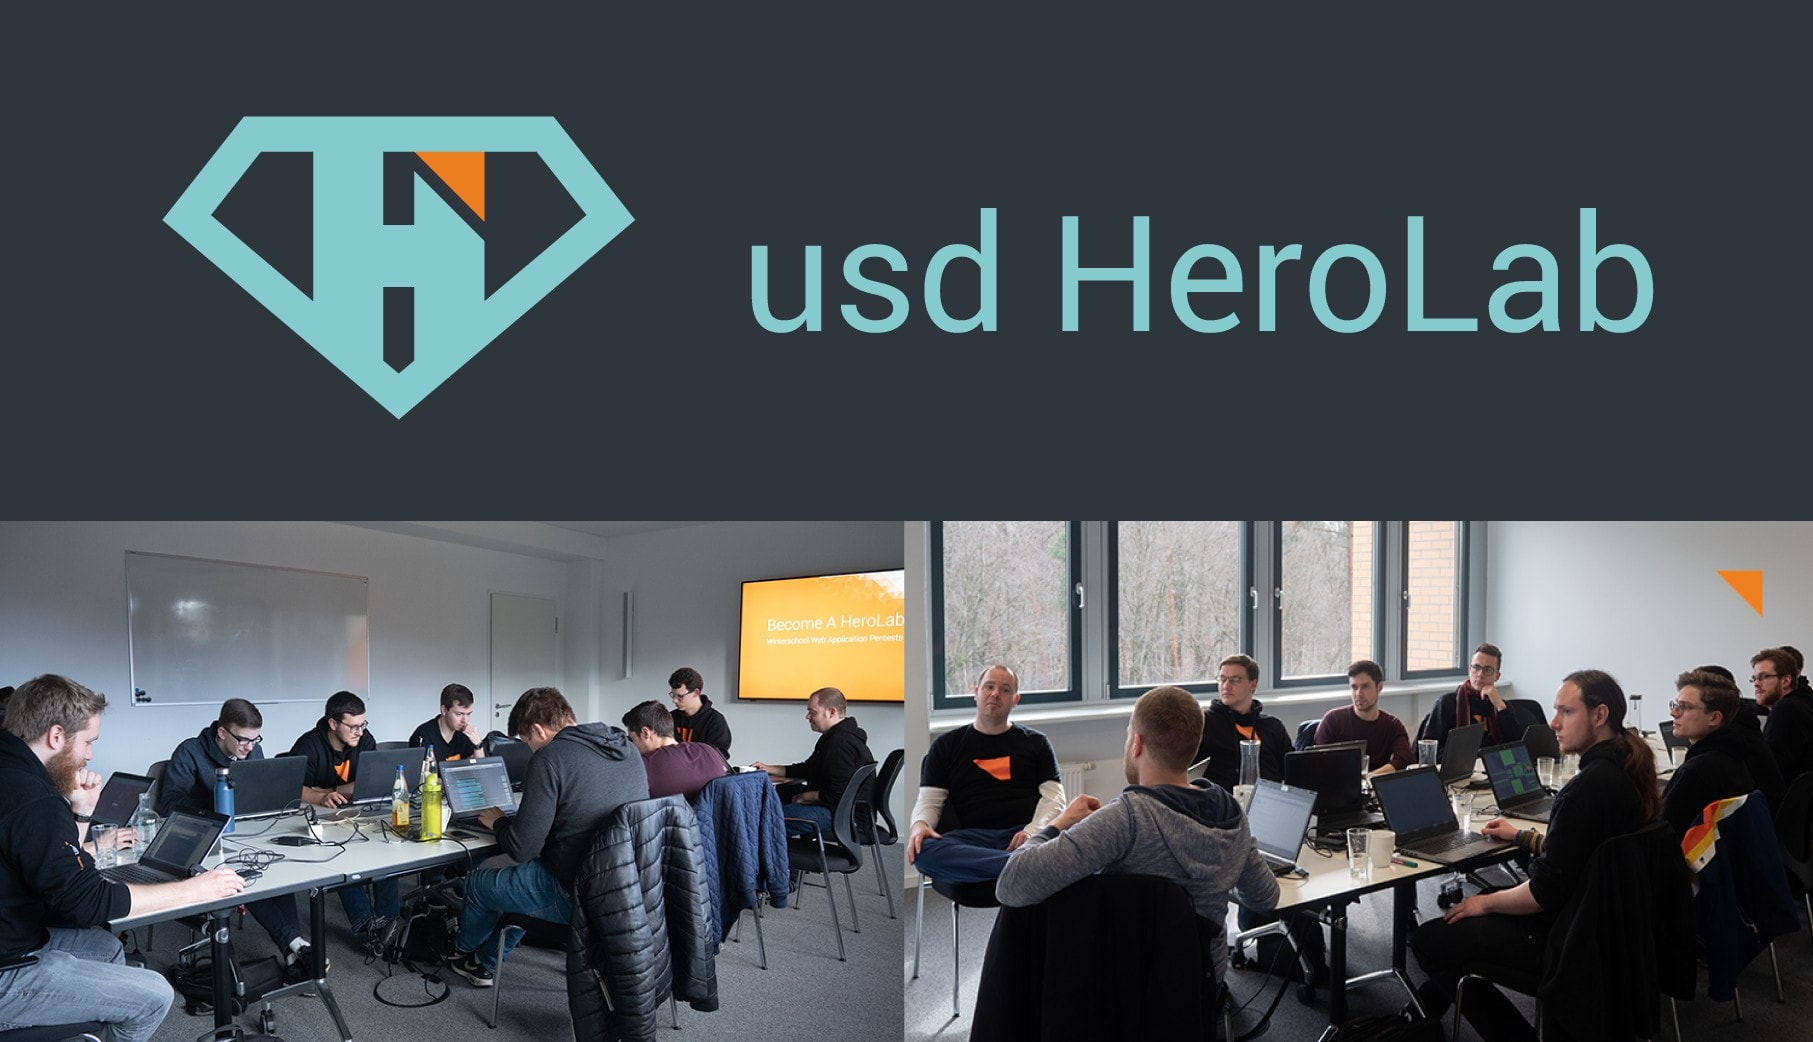 usd HeroLab Keeps Investing in Young Talent